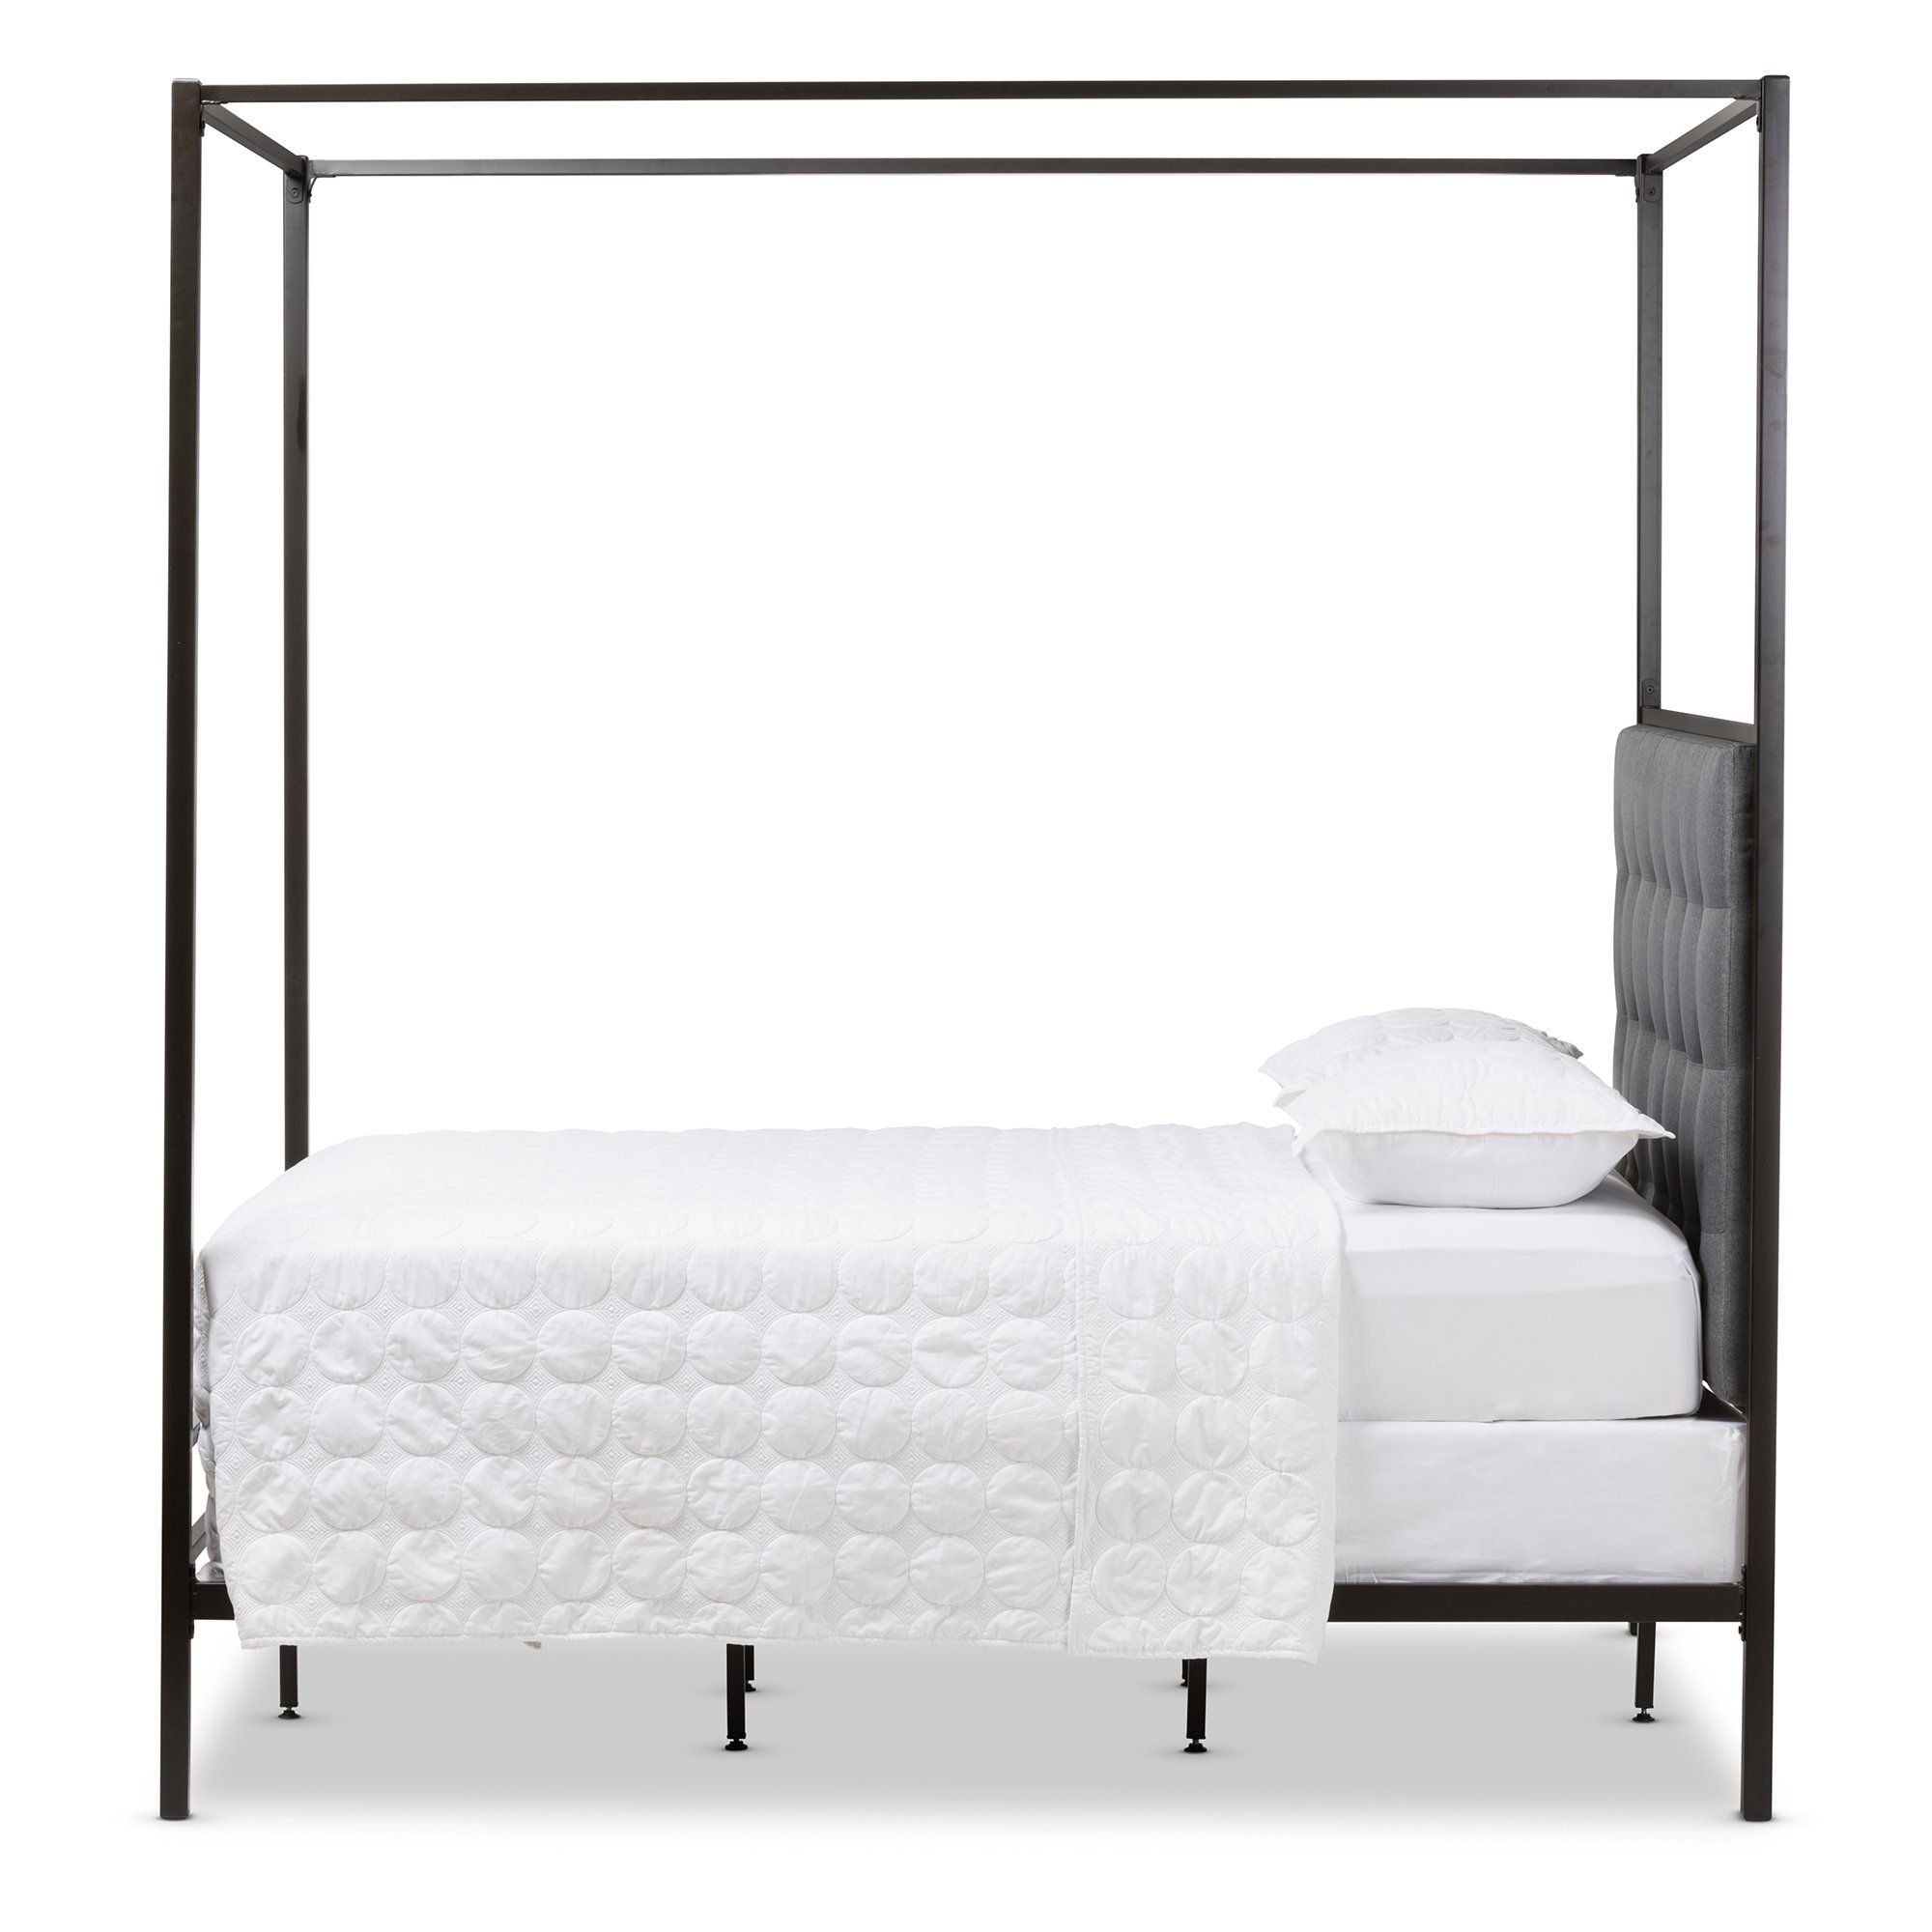 Baxton Studio Eleanor Black Metal Canopy Queen Bed